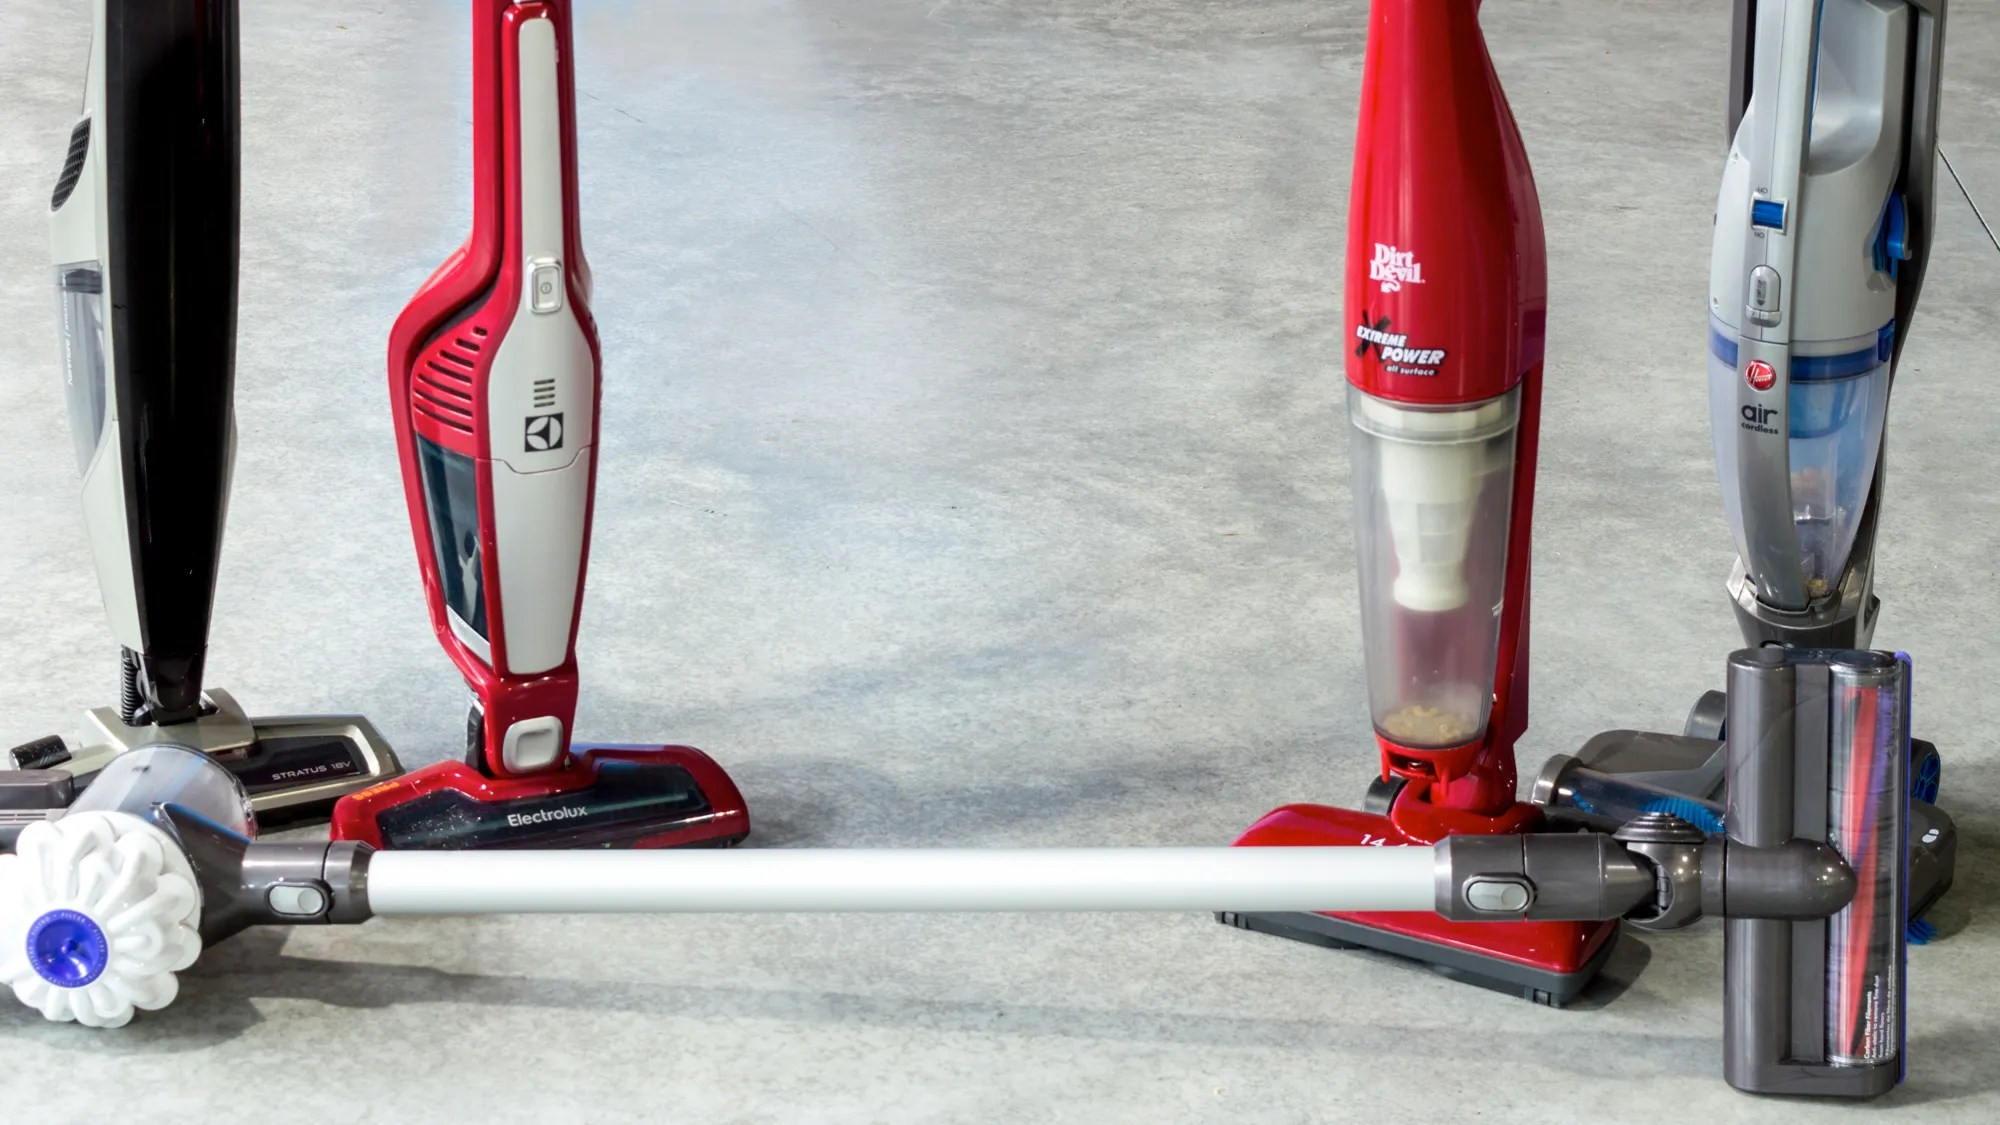 The Best Cordless Vacuums Of 2020 Dyson Lg Tineco And More